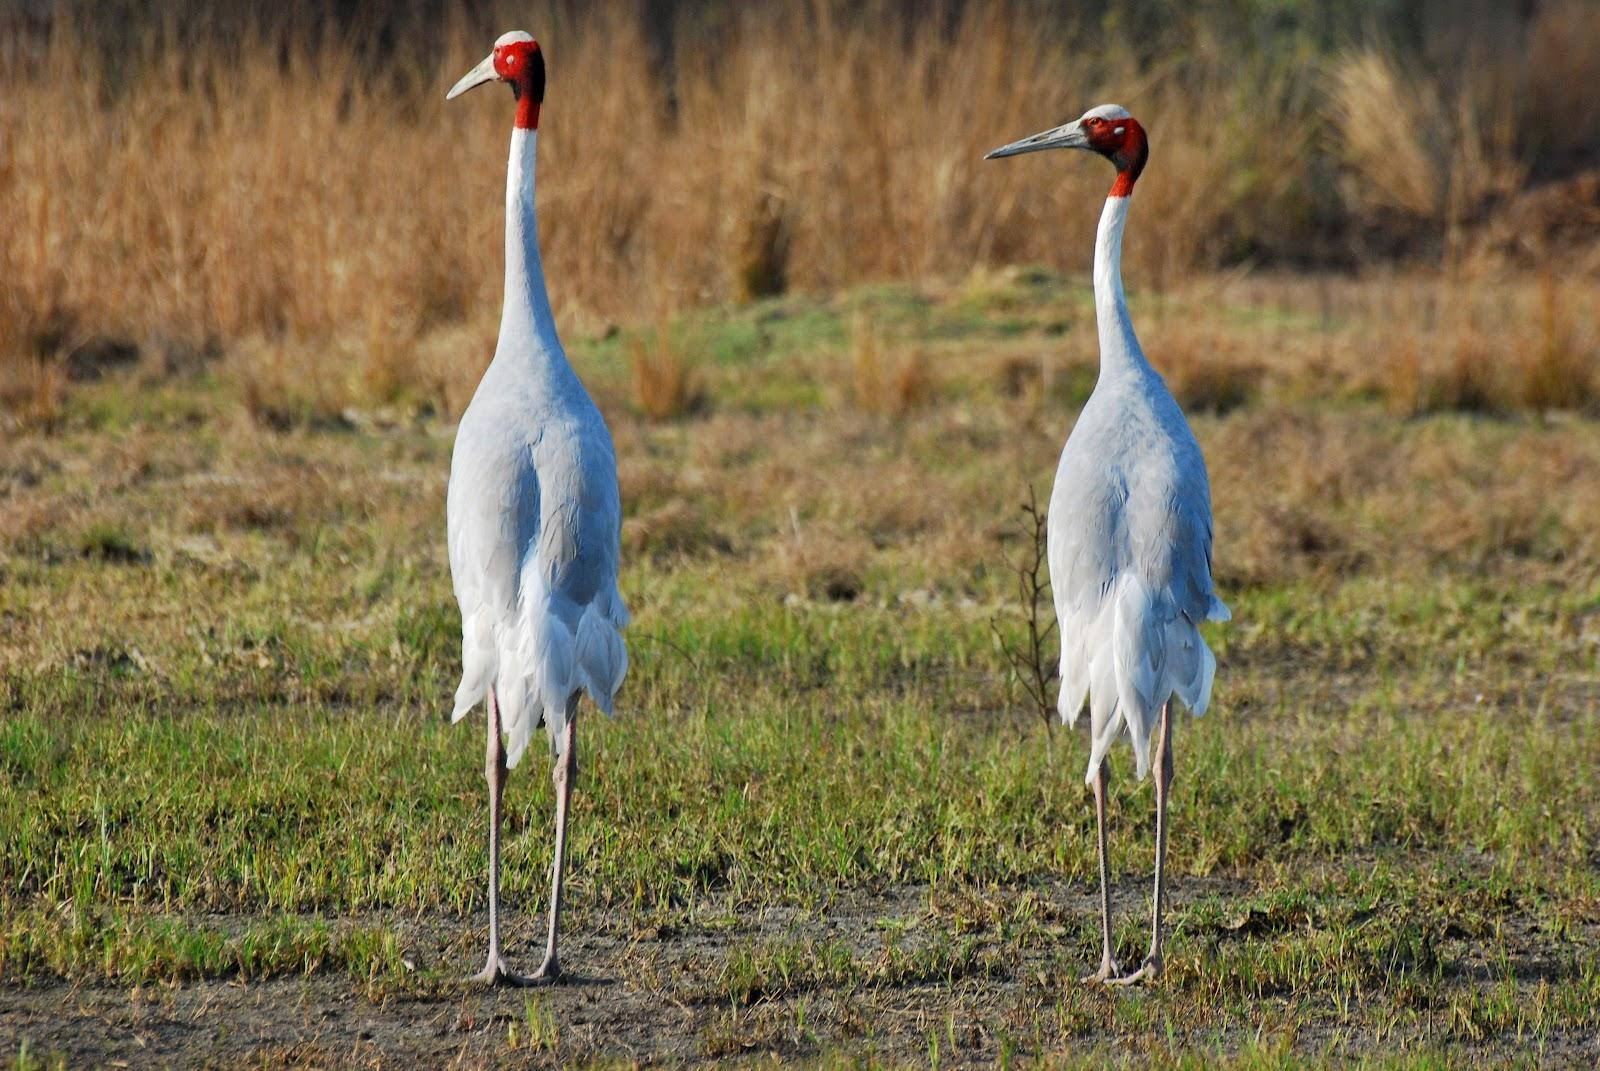 All about animal wildlife crane bird facts and images photos for The crain